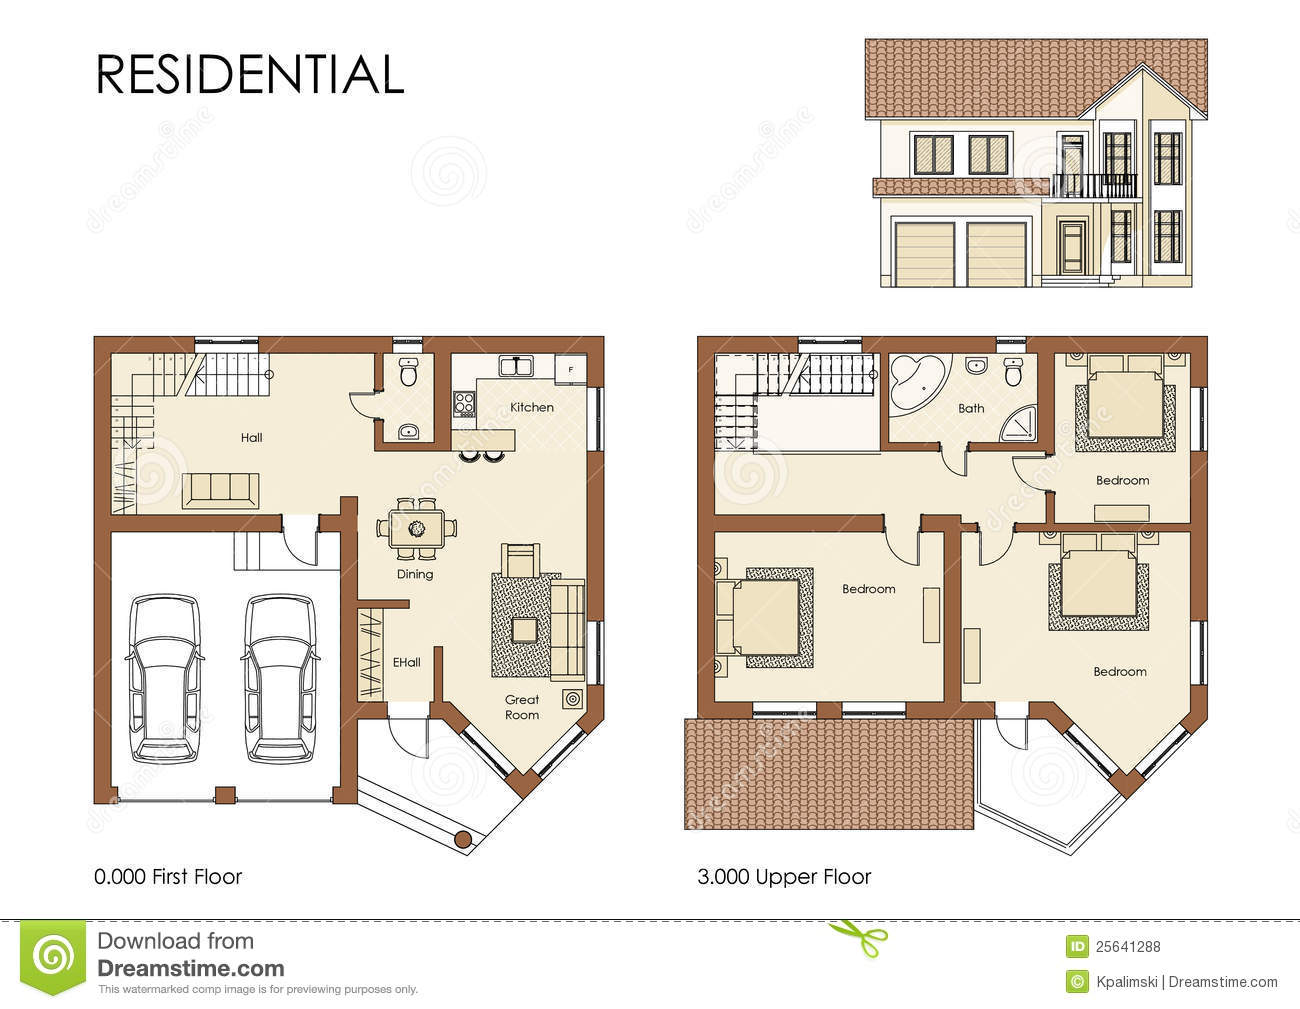 Residential house plan stock illustration illustration of for Residential home plans